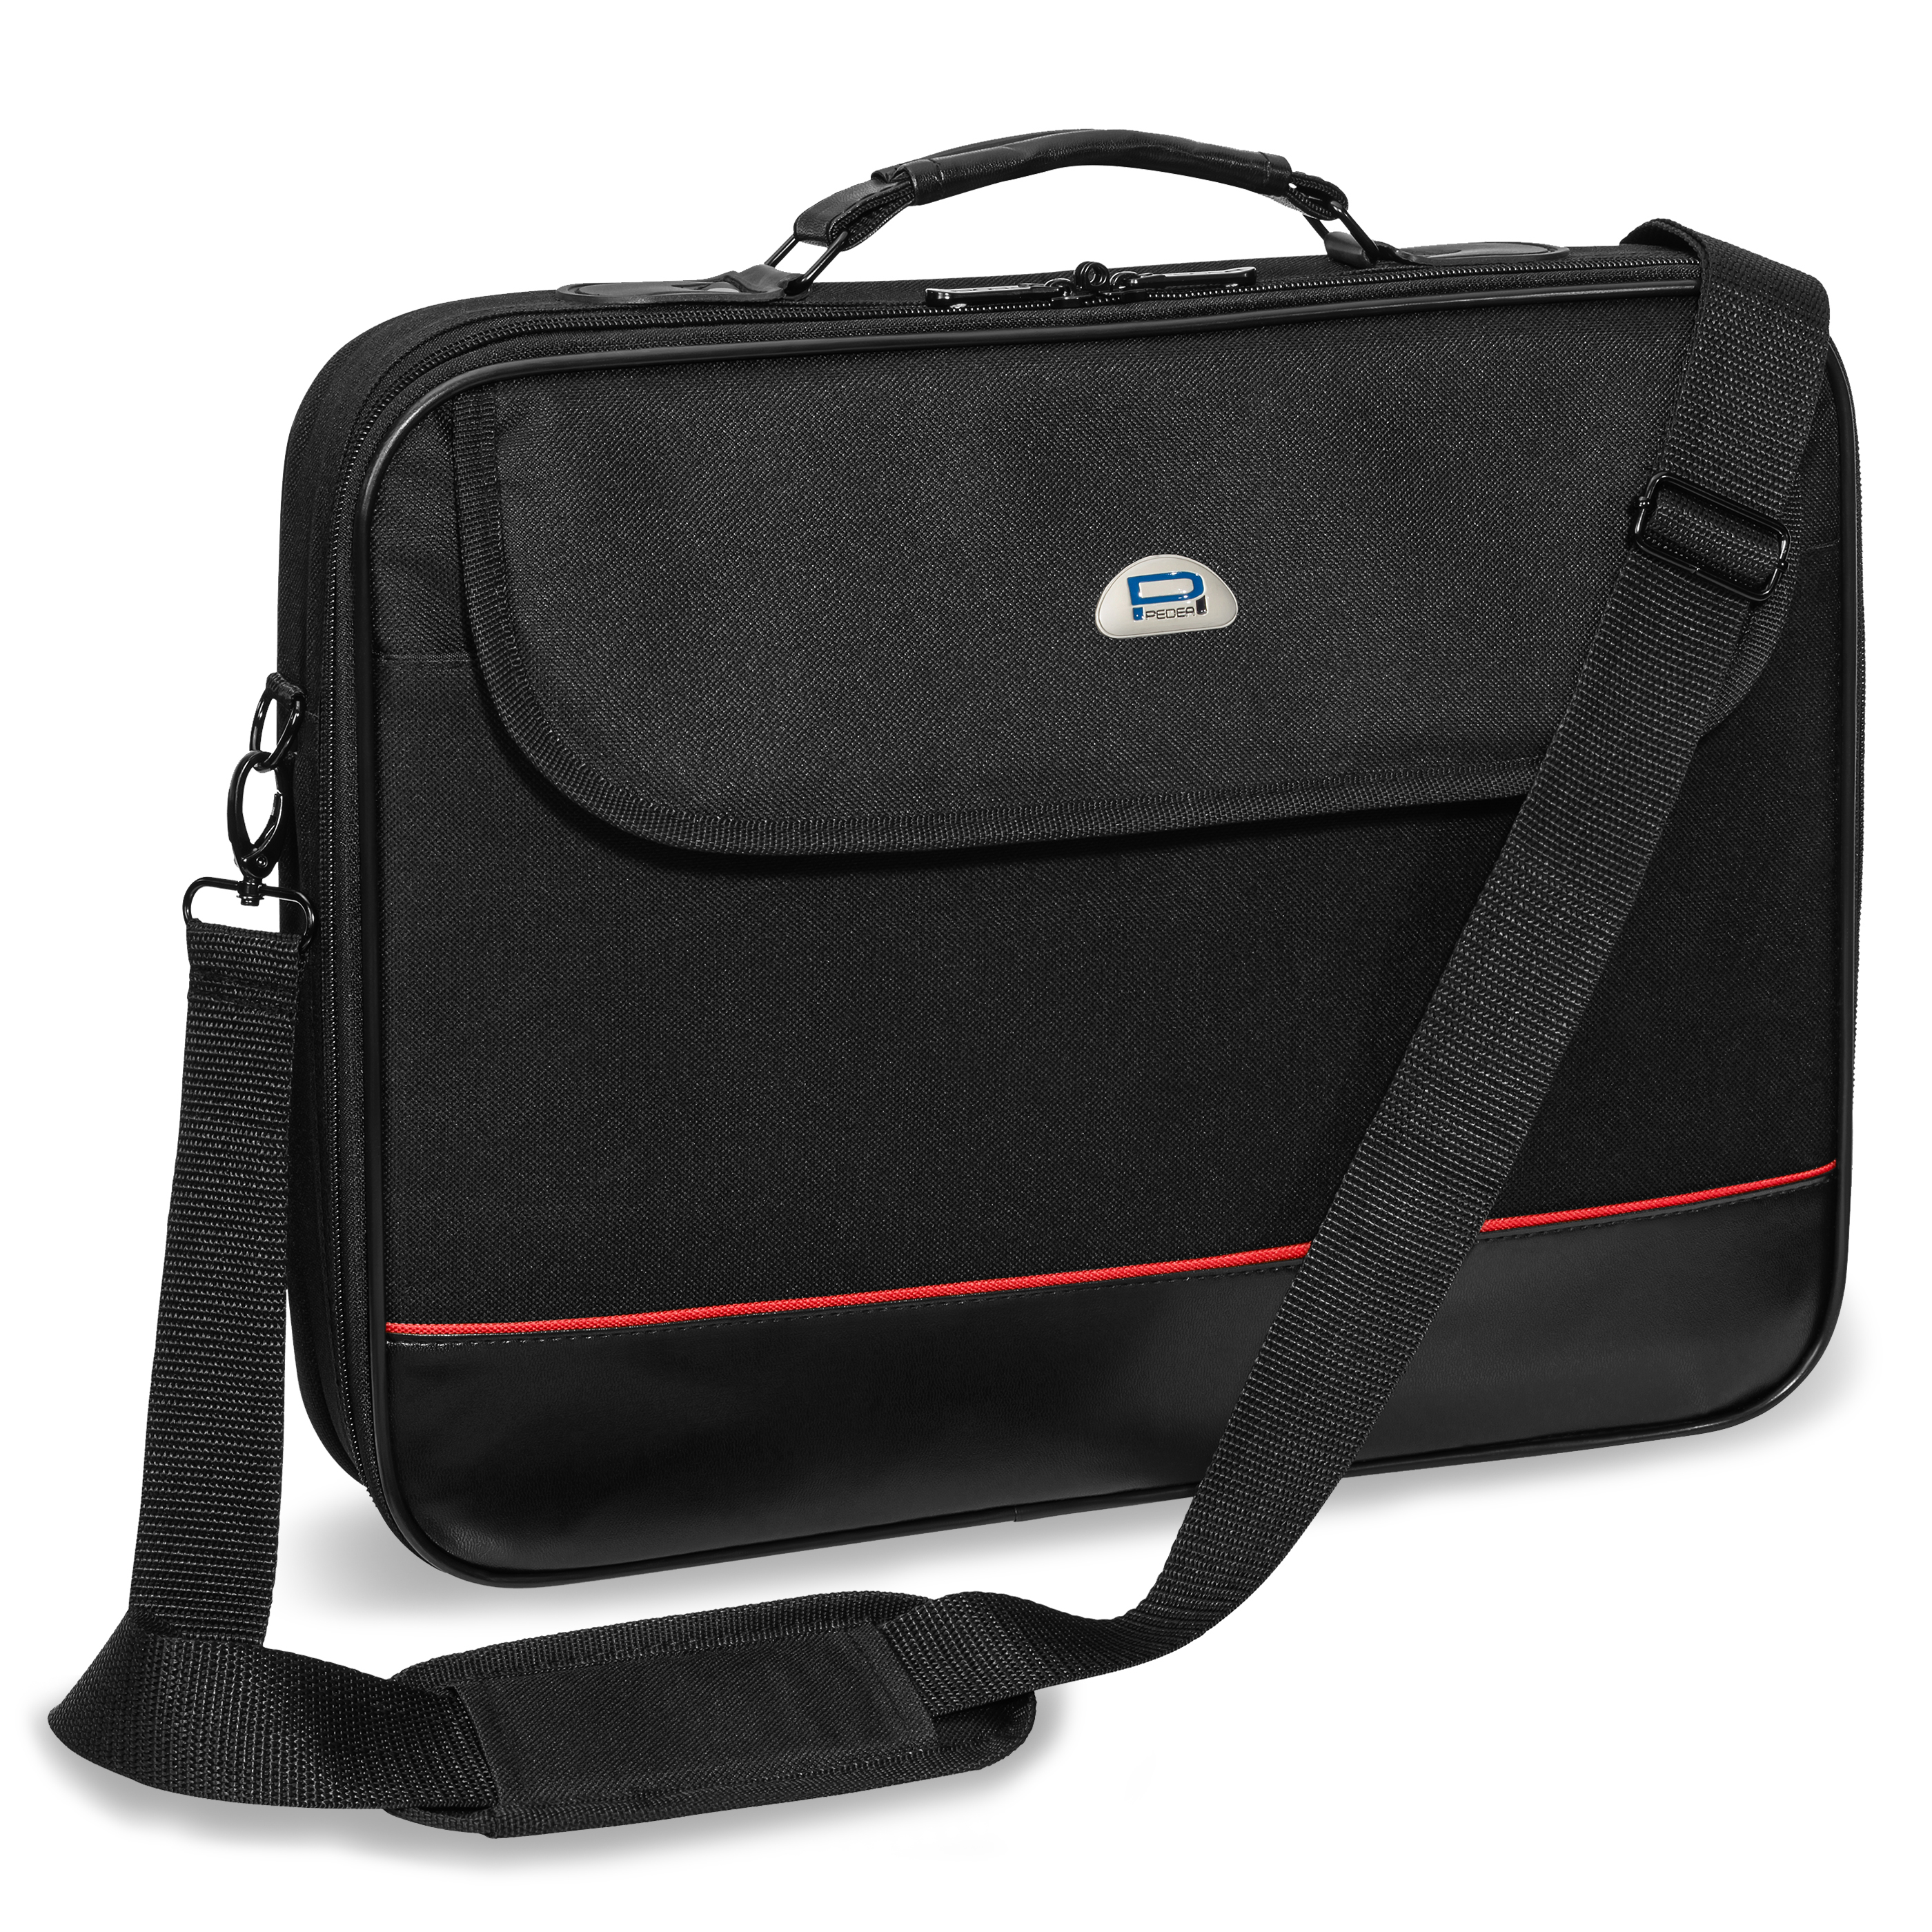 PEDEA Trendline Clamshell Laptop Bag Case 17.3